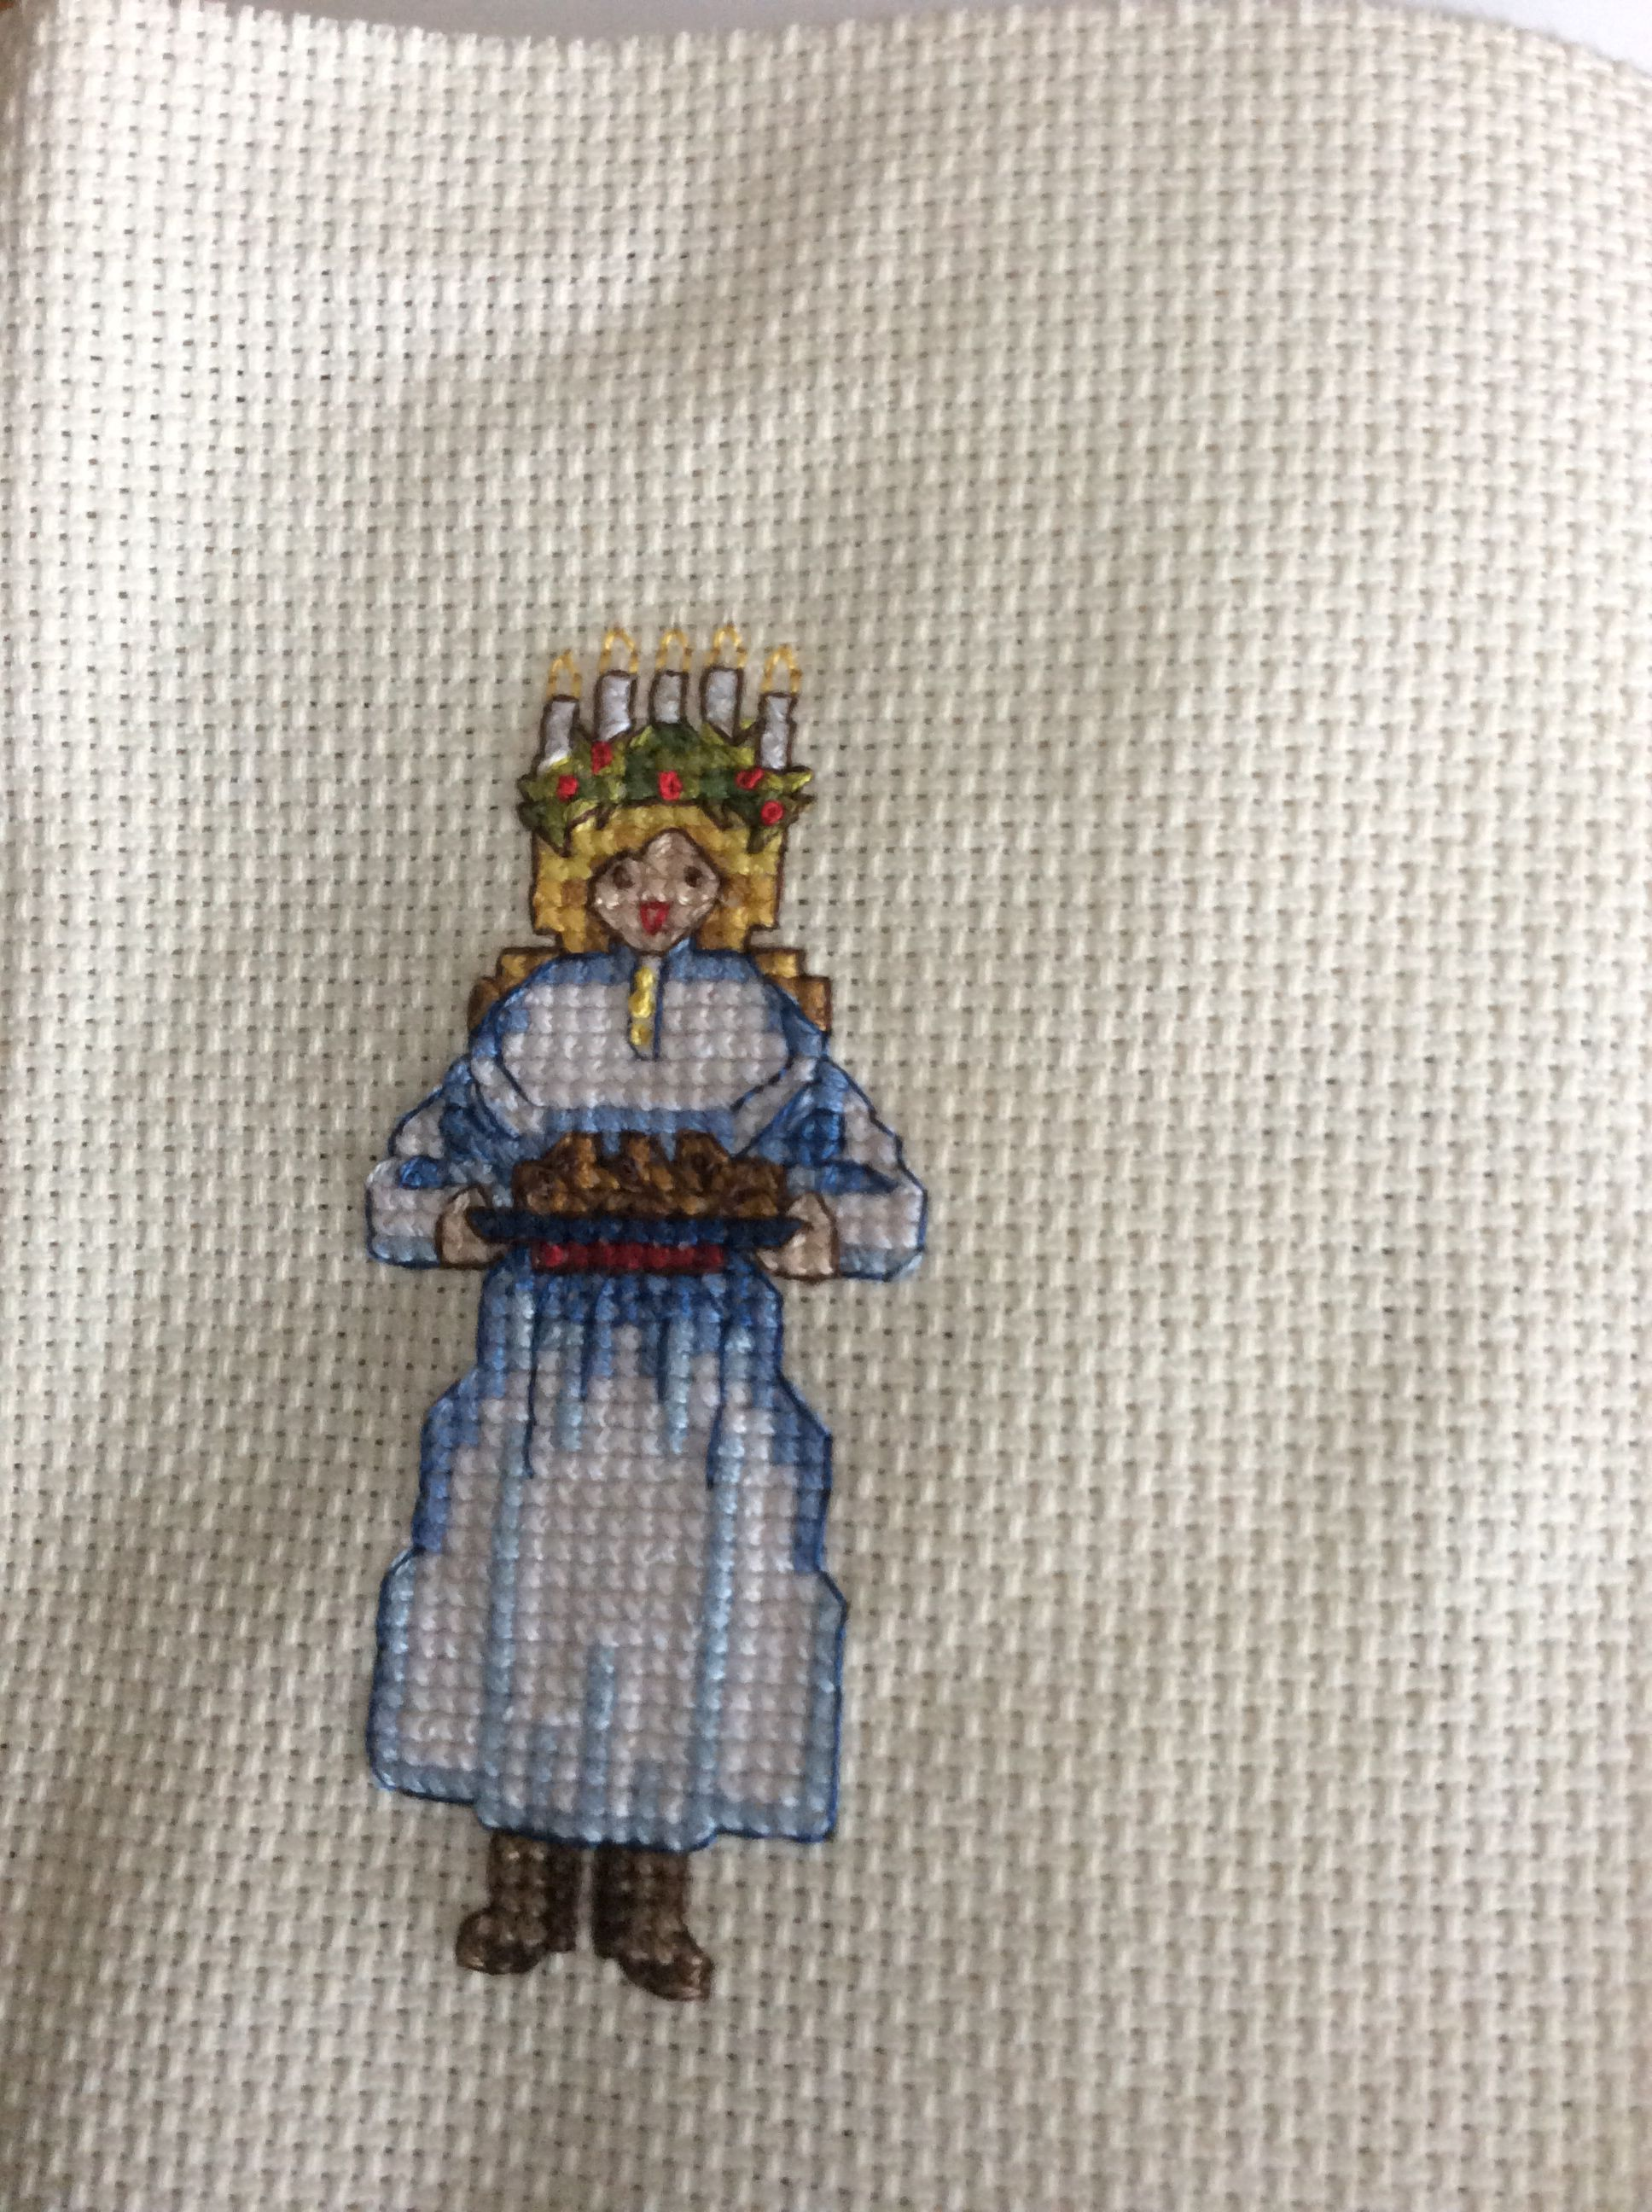 Sankta Lucia svensk jul korsstygn. Saint Lucia Swedish Christmas cross stitch.